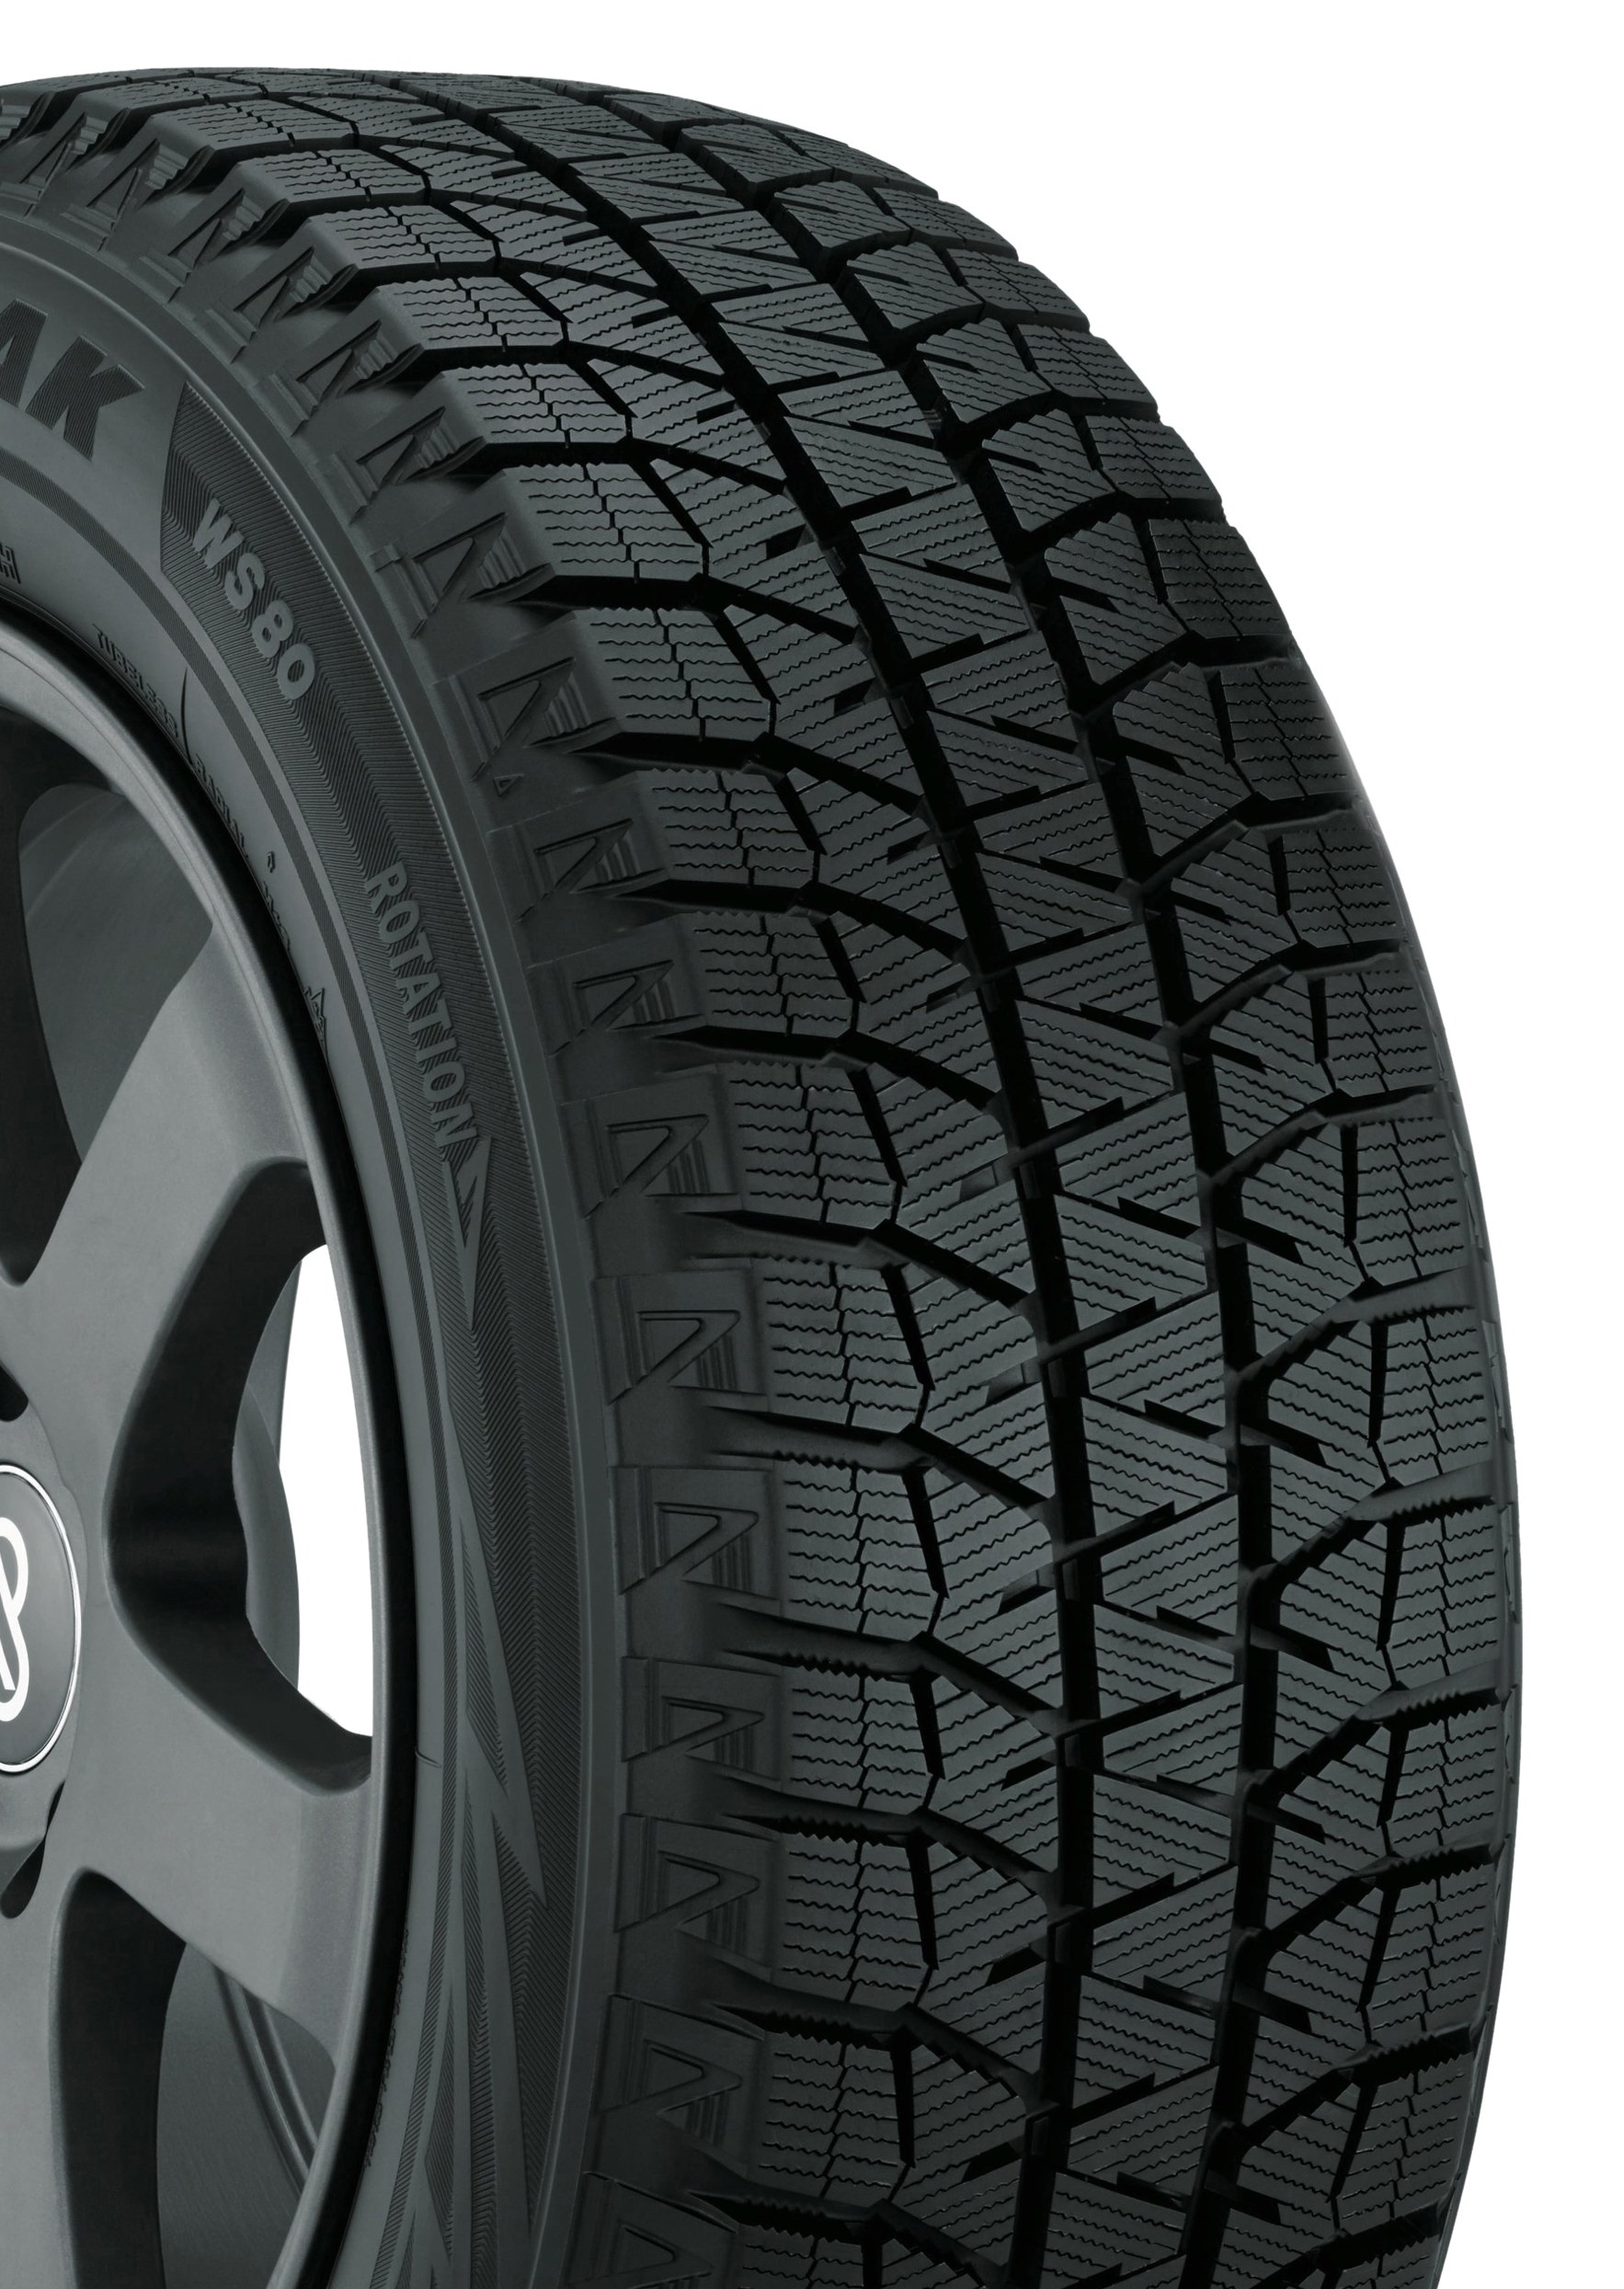 Bridgestone Blizzak WS80 Winter Radial Tire - 225/65R17 102H by Bridgestone (Image #1)